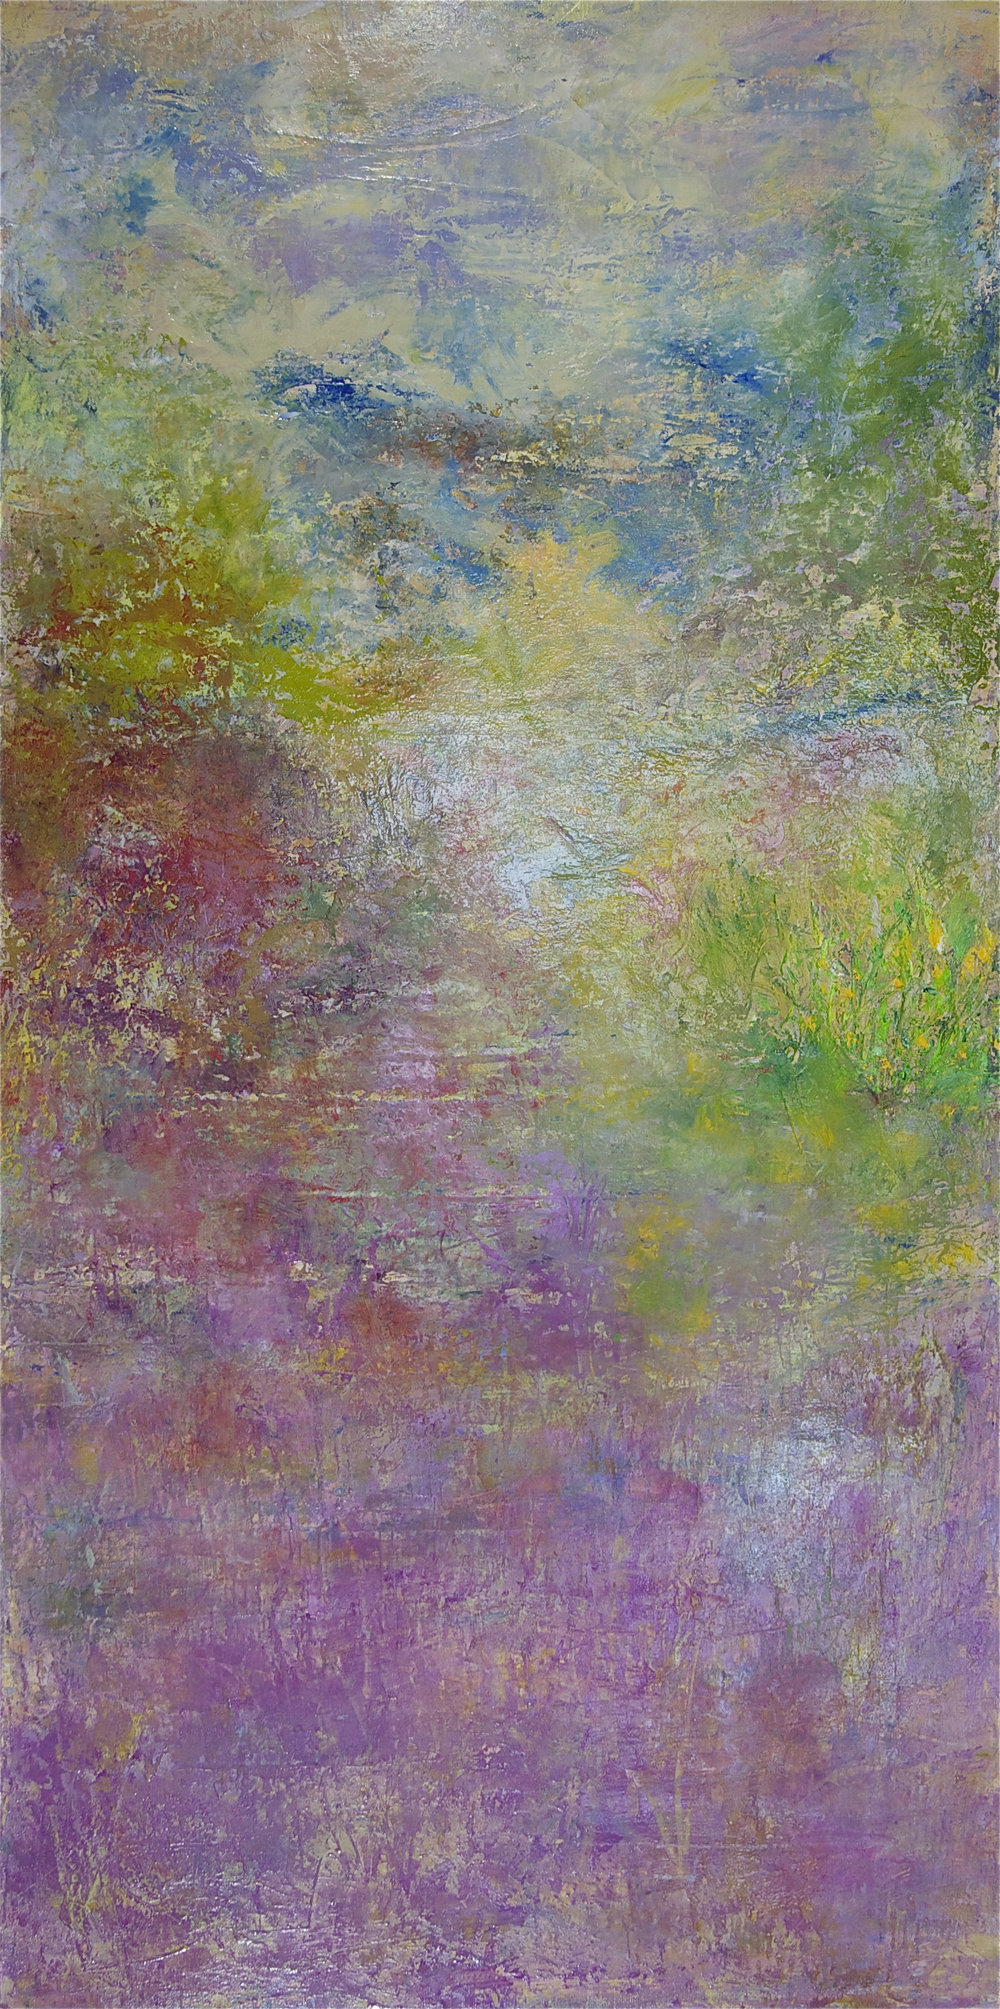 Jill S. Krutick, PINK FIELD, Oil on canvas, 36 x 18 inches (91.4 x 45.7 cm).